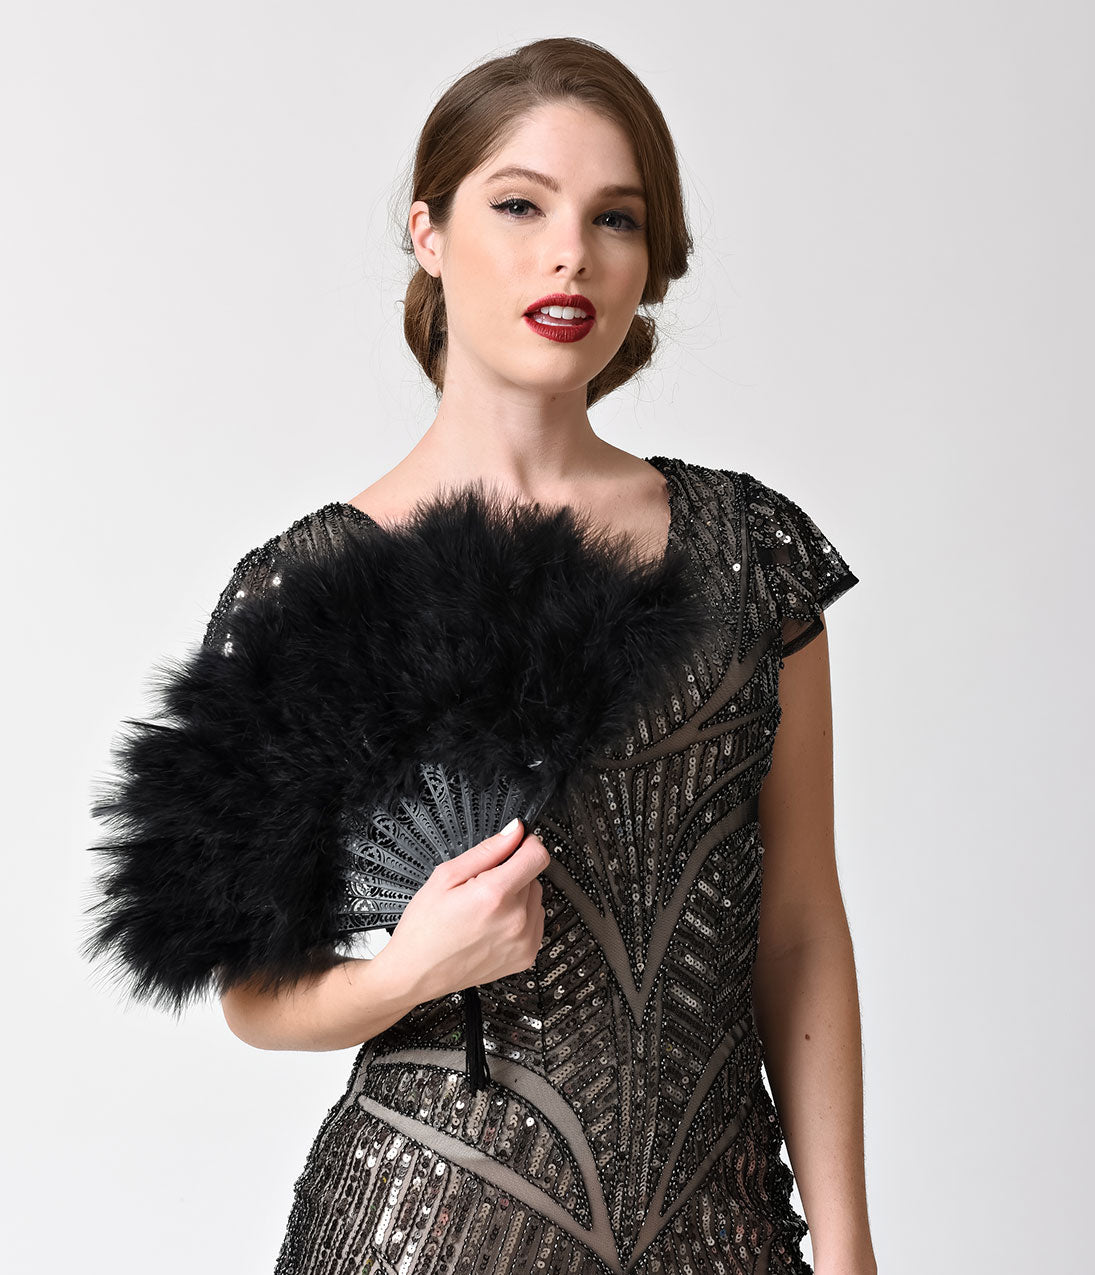 Flapper Costume: How to Dress Like a 20s Flapper Girl Vintage Style Black Marabou Feather Fan $18.00 AT vintagedancer.com